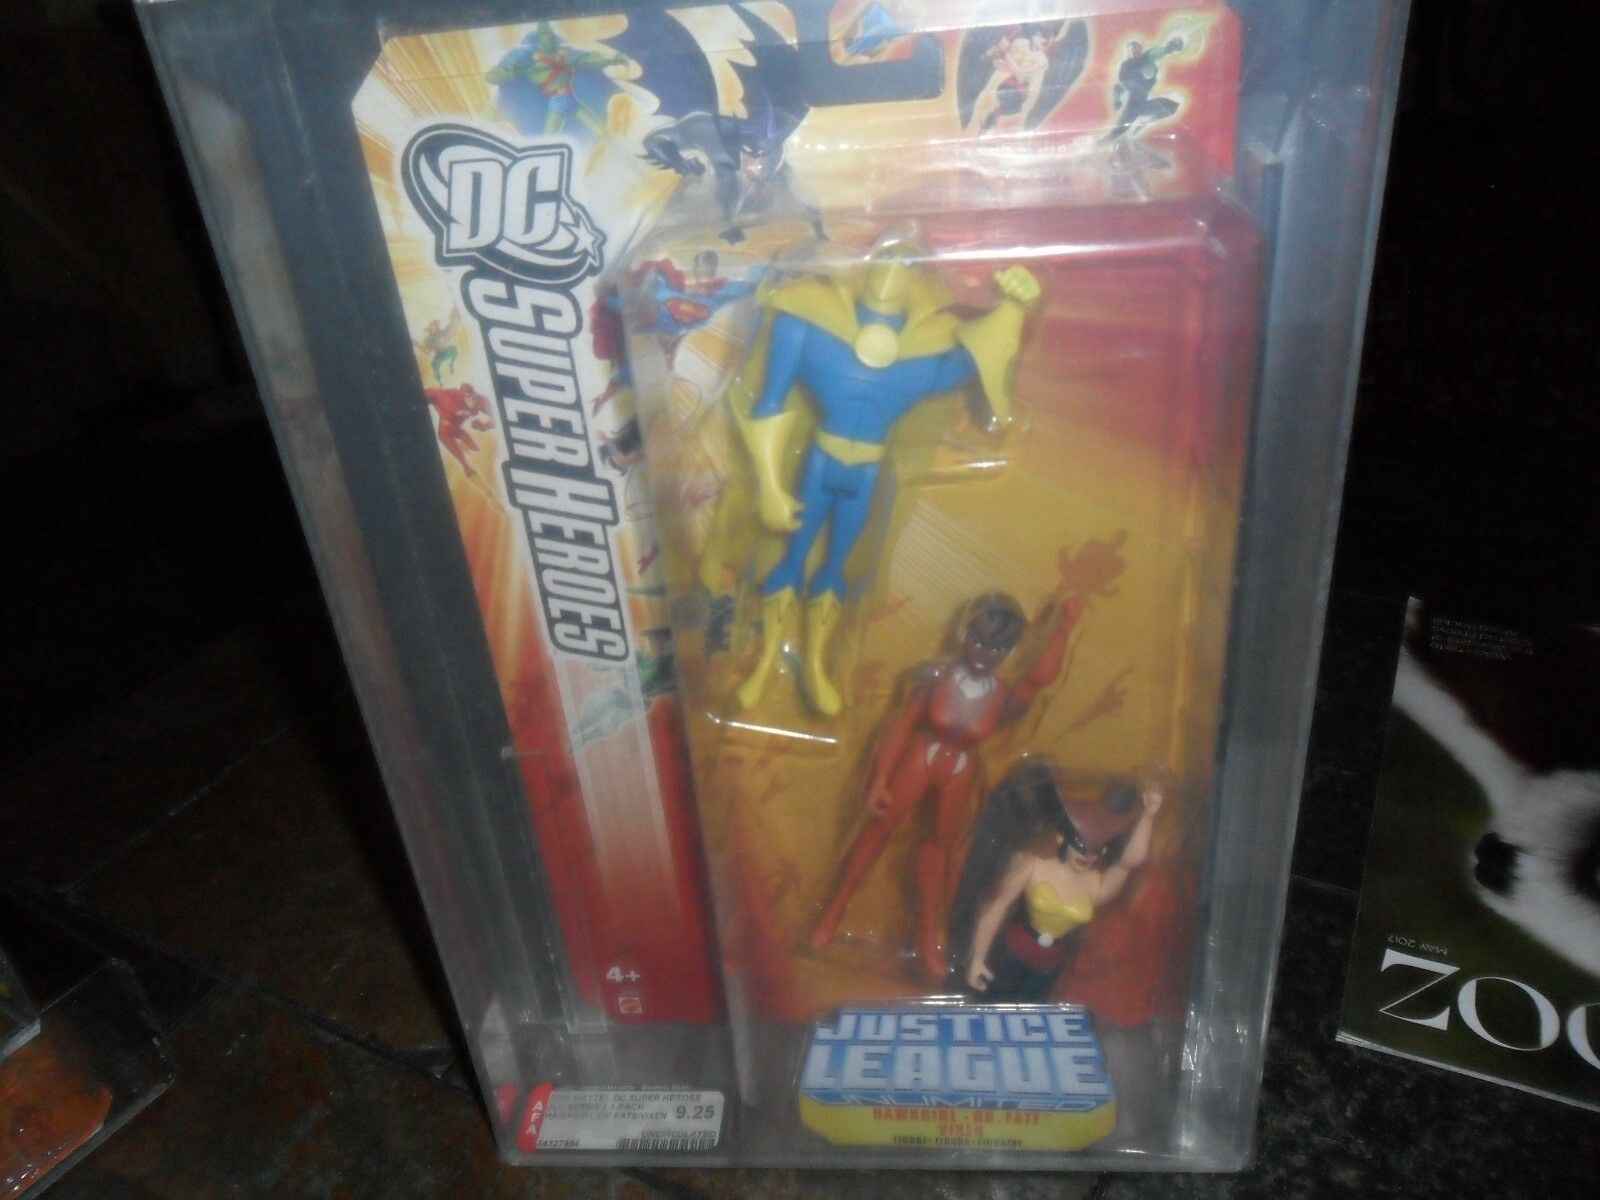 AFA 9.25 MINT FIGURES DC SUPER HEROES 2006 JUSTICE LEAGUE HAWKGIRL DR FATE VIXEN